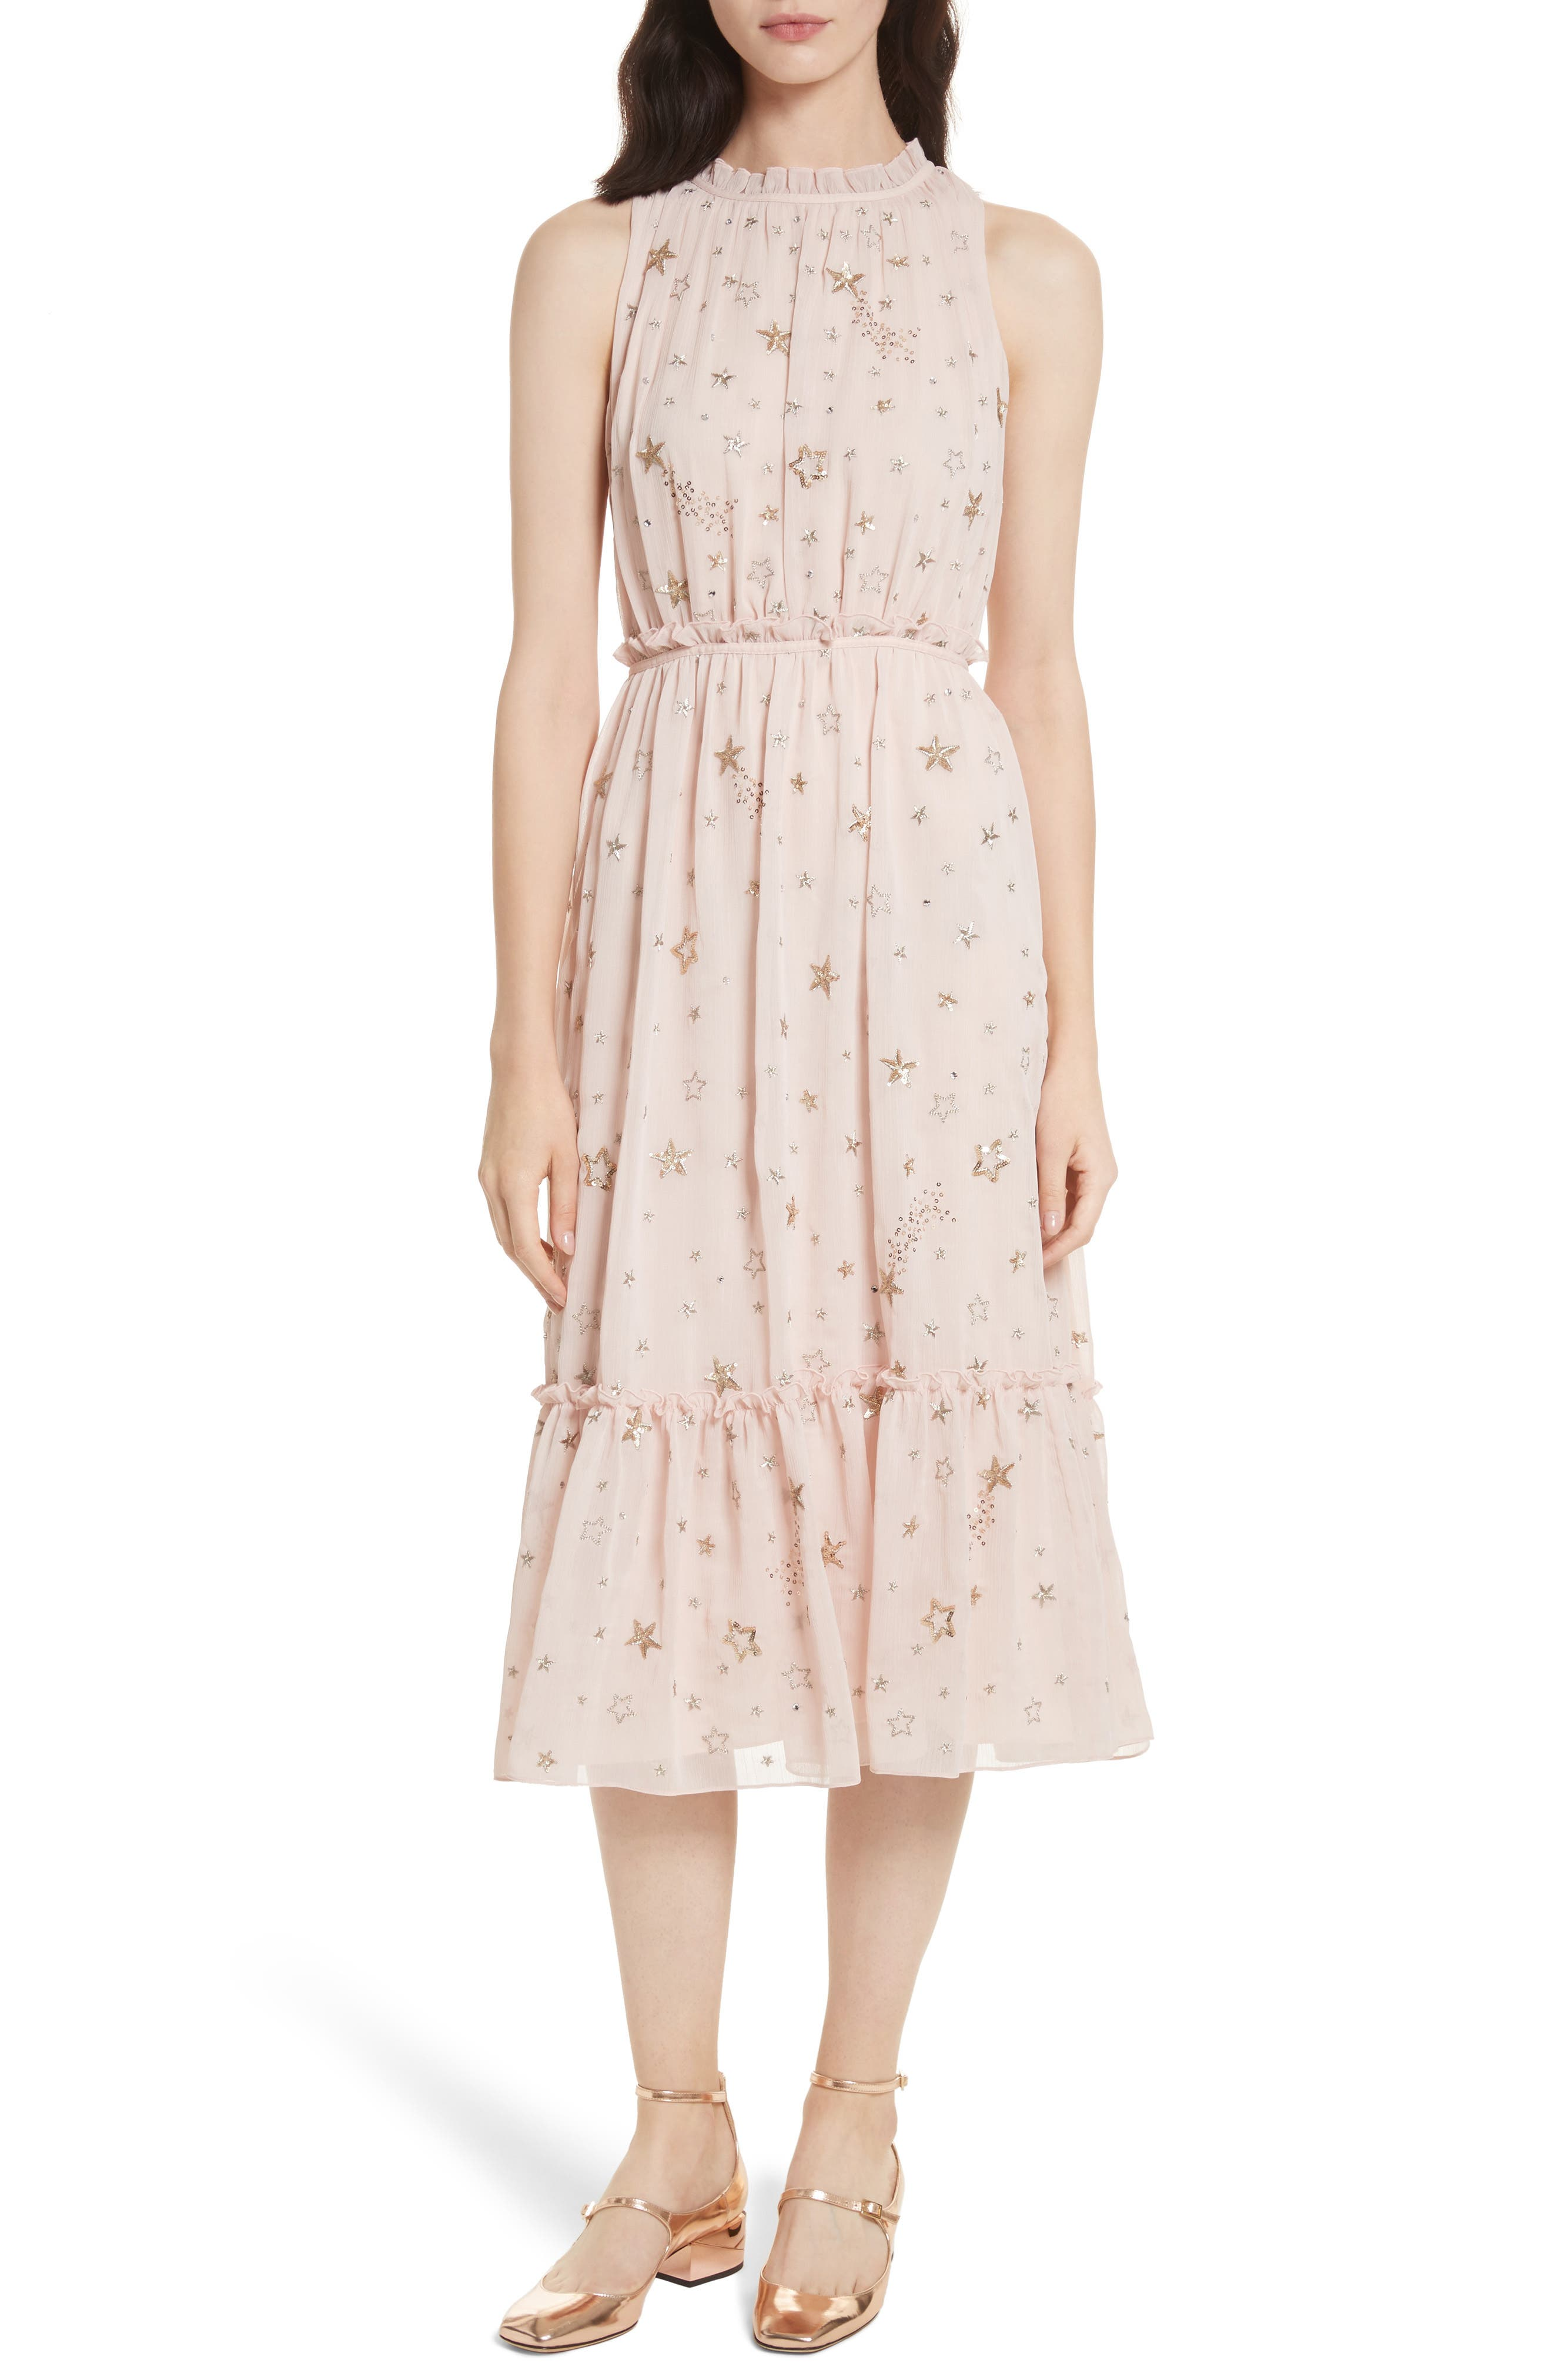 AdKate Spade Bags & Purse 80% OFF, Free Shipping over $99, Save 6% off above $Your Online store to shop for women dresses.